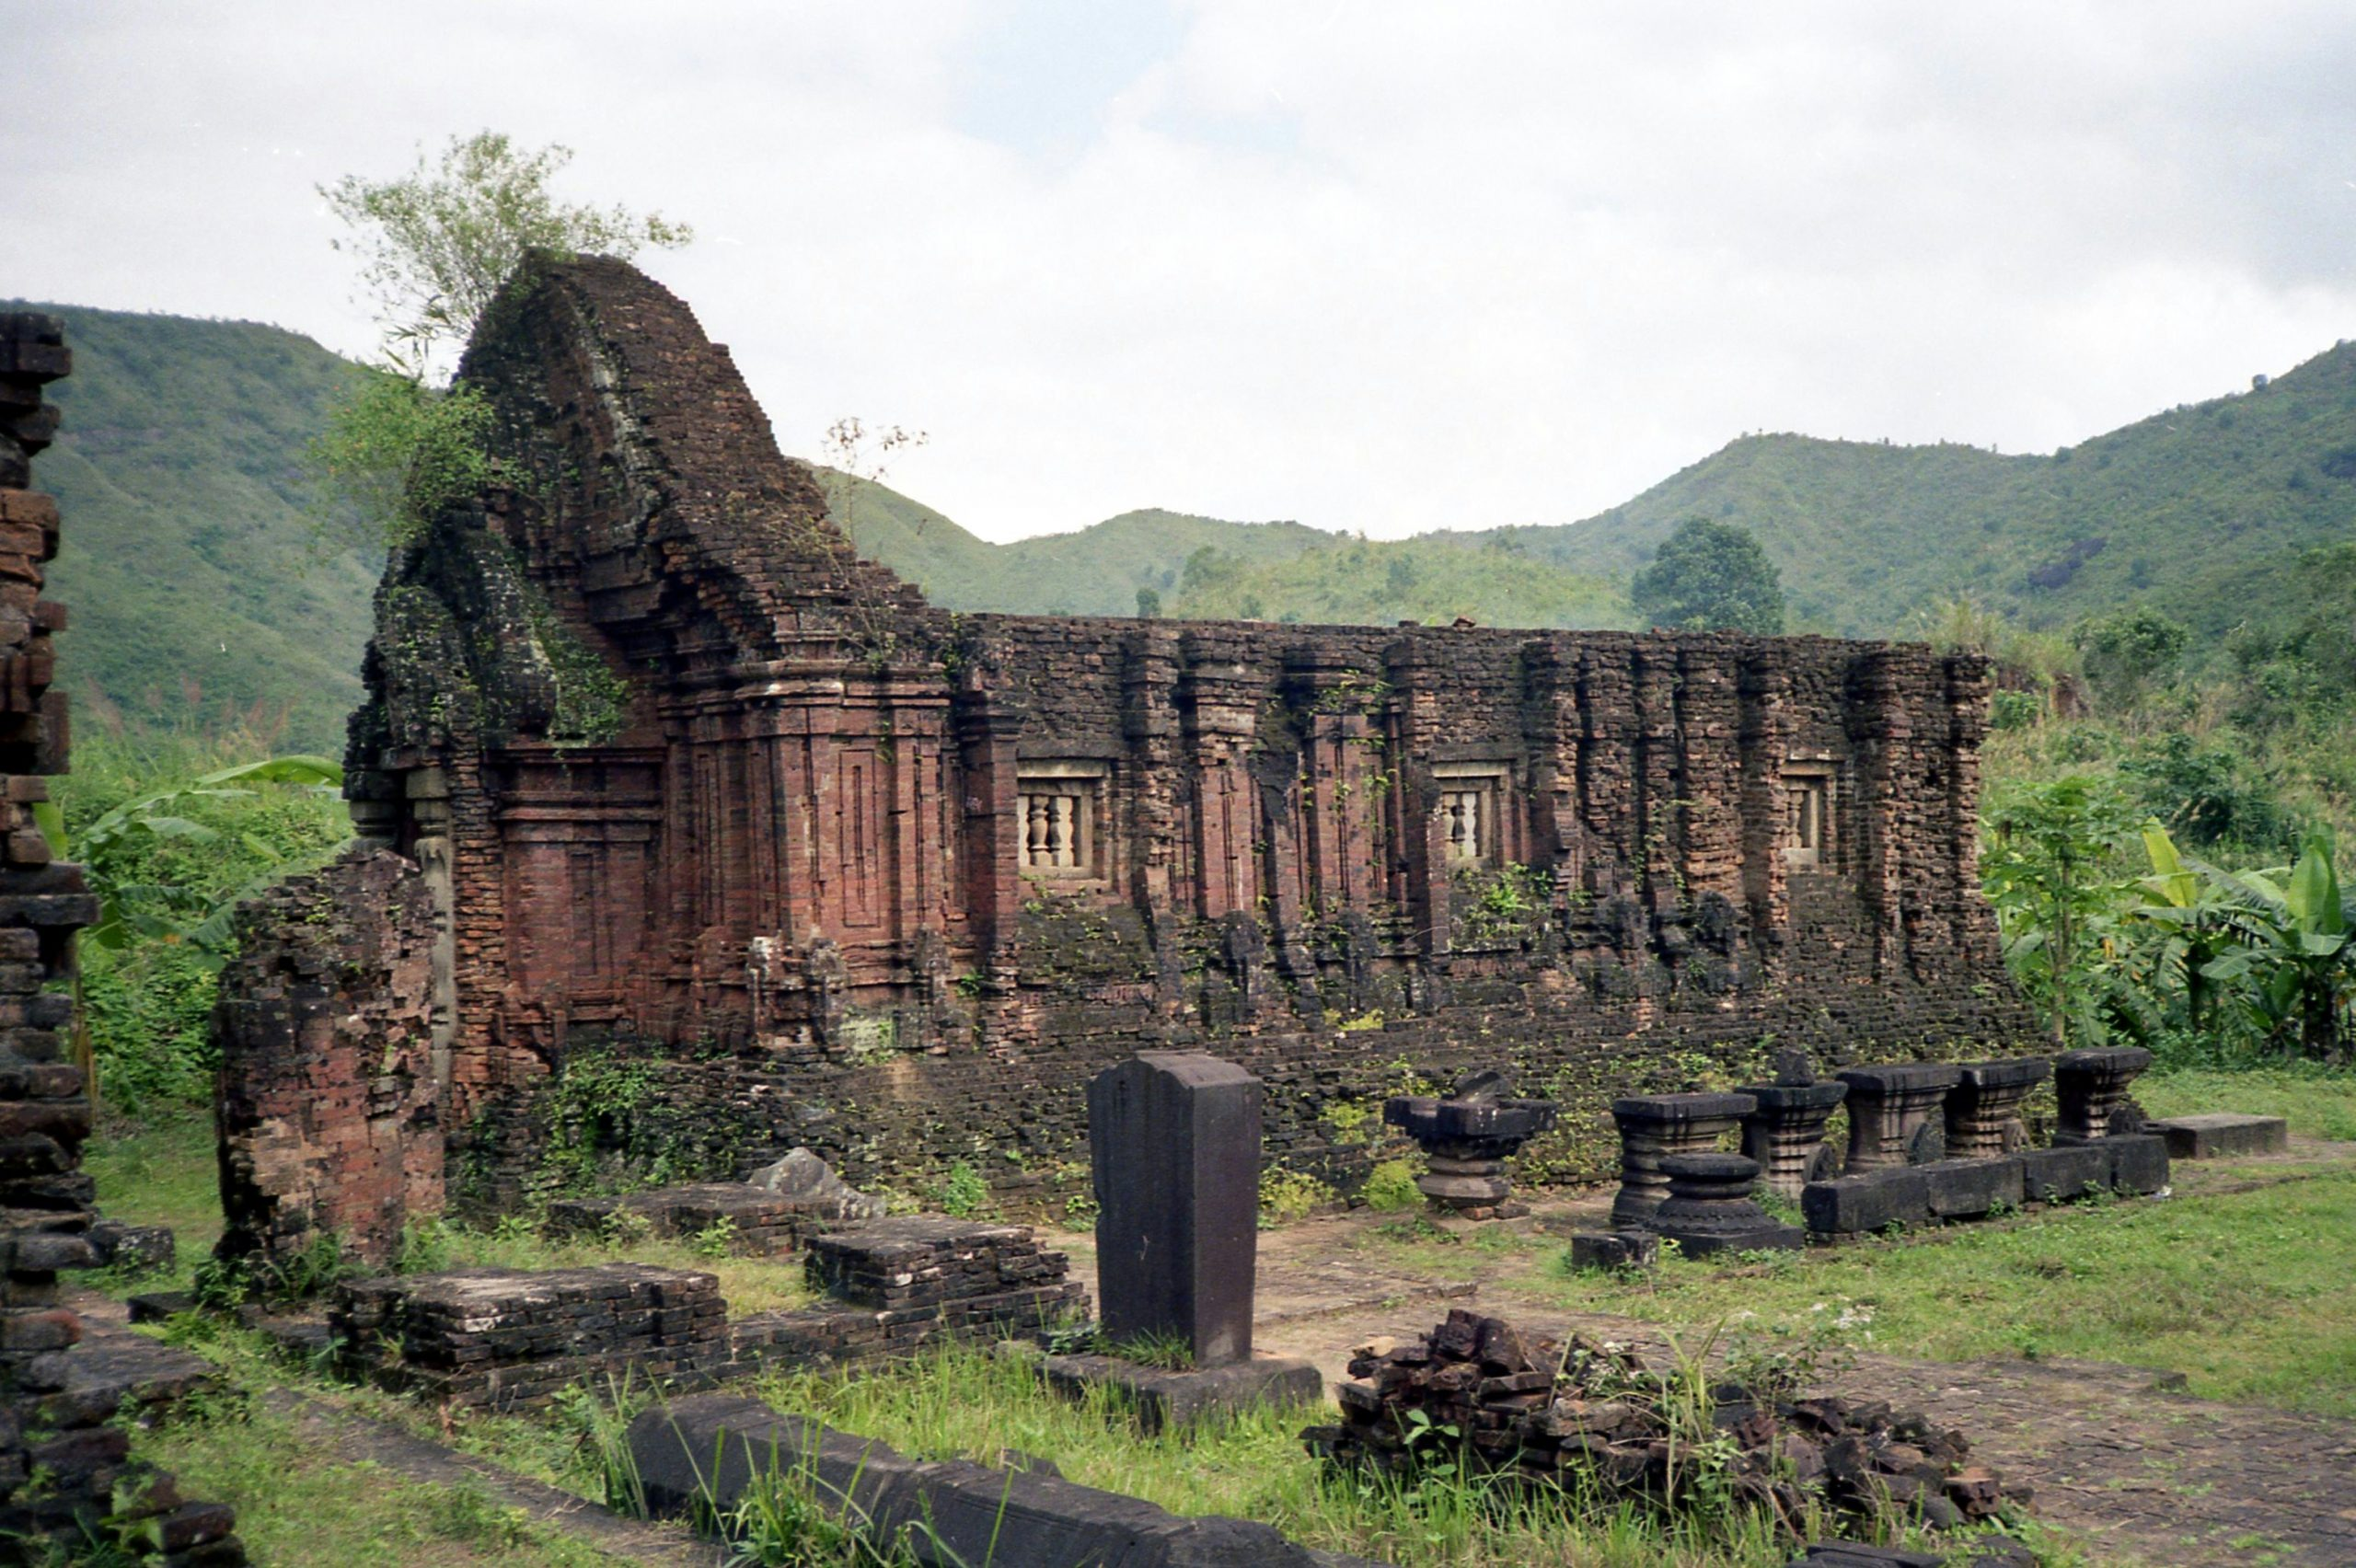 Top Place in Vietnam That Every Tourist Must Visit - My Son